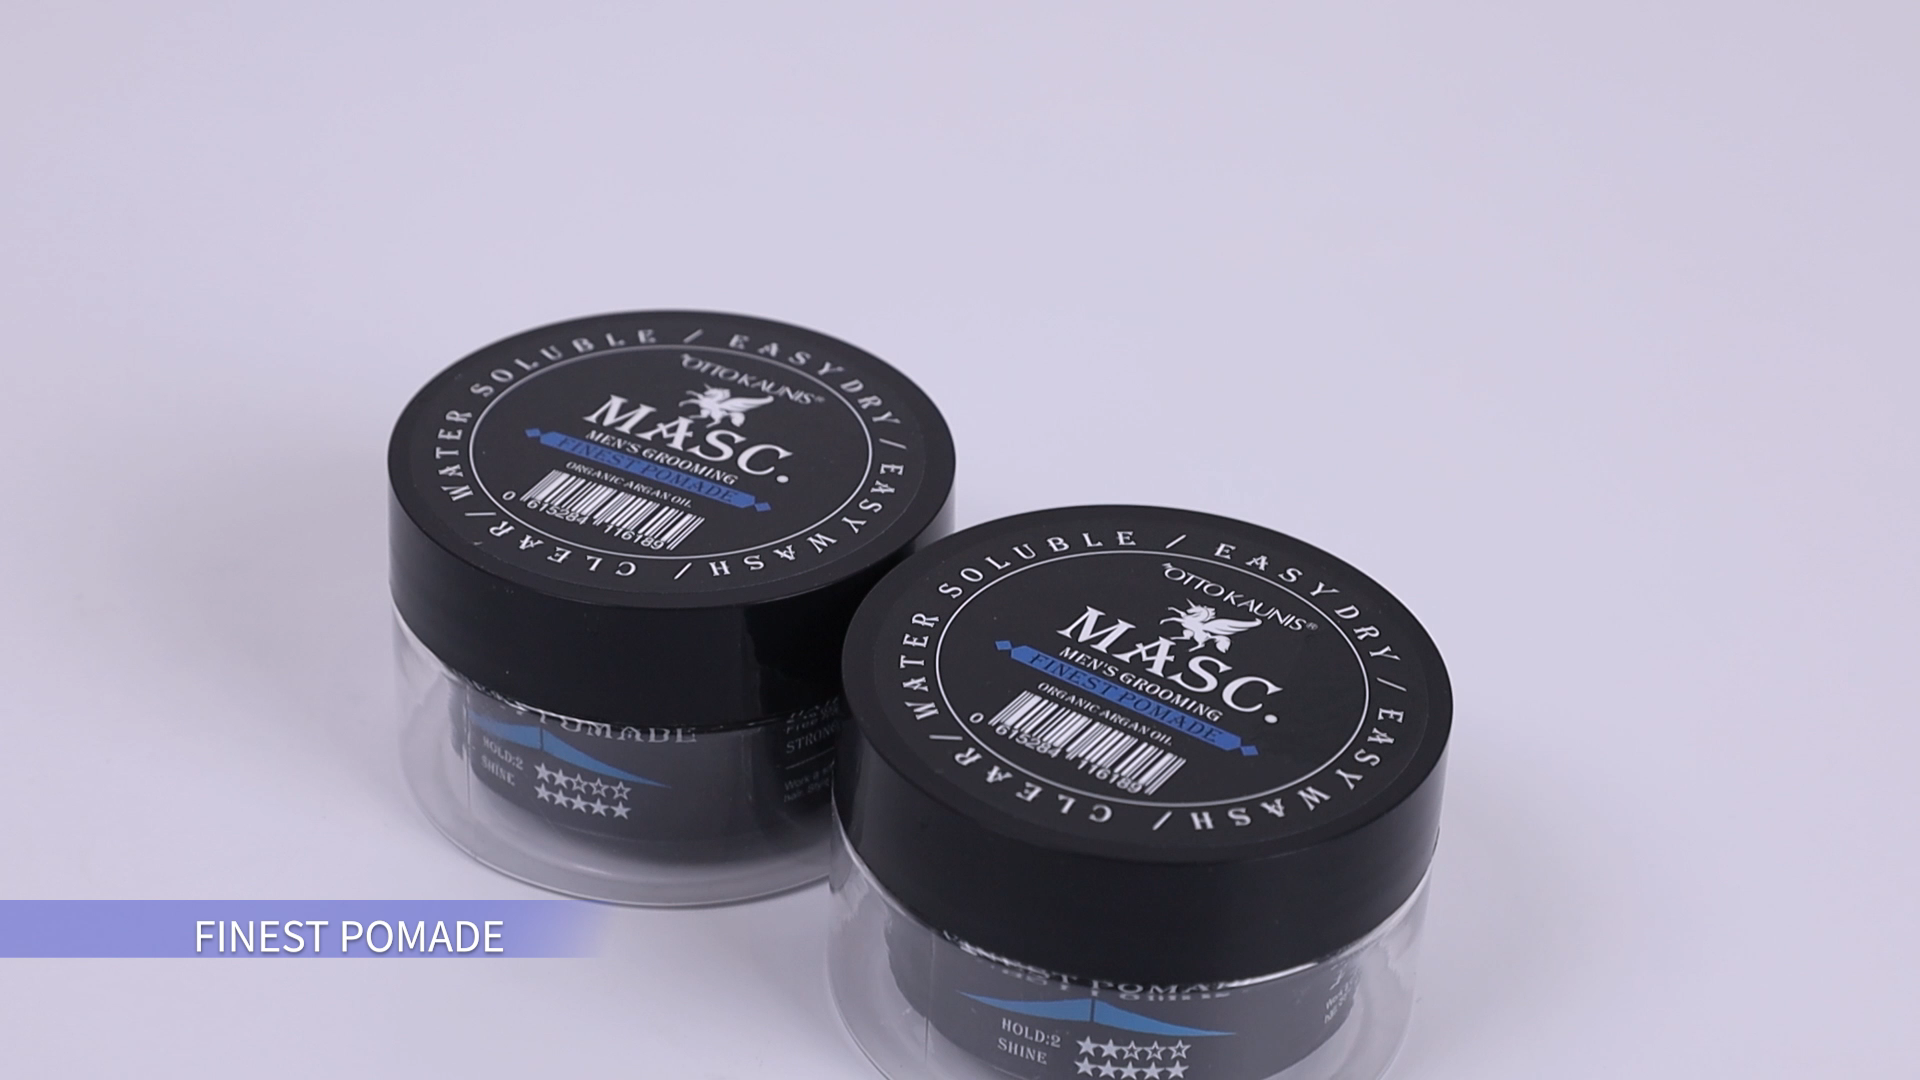 OEM OTTO KAUNIS Profession elle Haarstyling-Produkte Easy Wash Feinste Pomade Edge Control Private Label